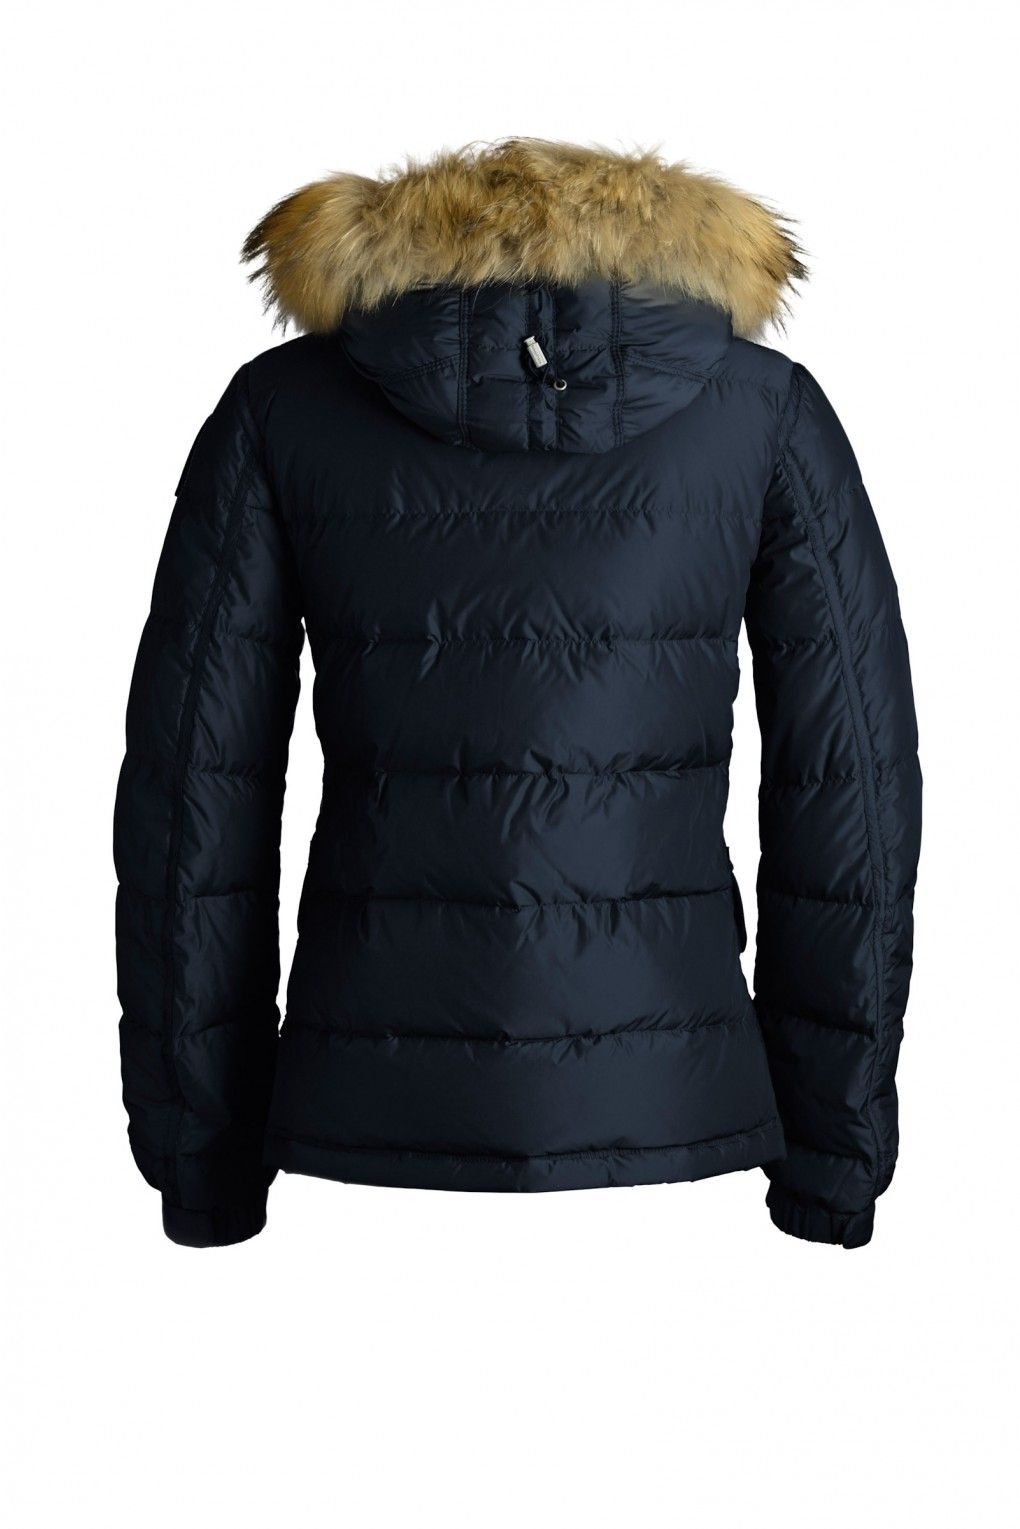 parajumpers long bear army